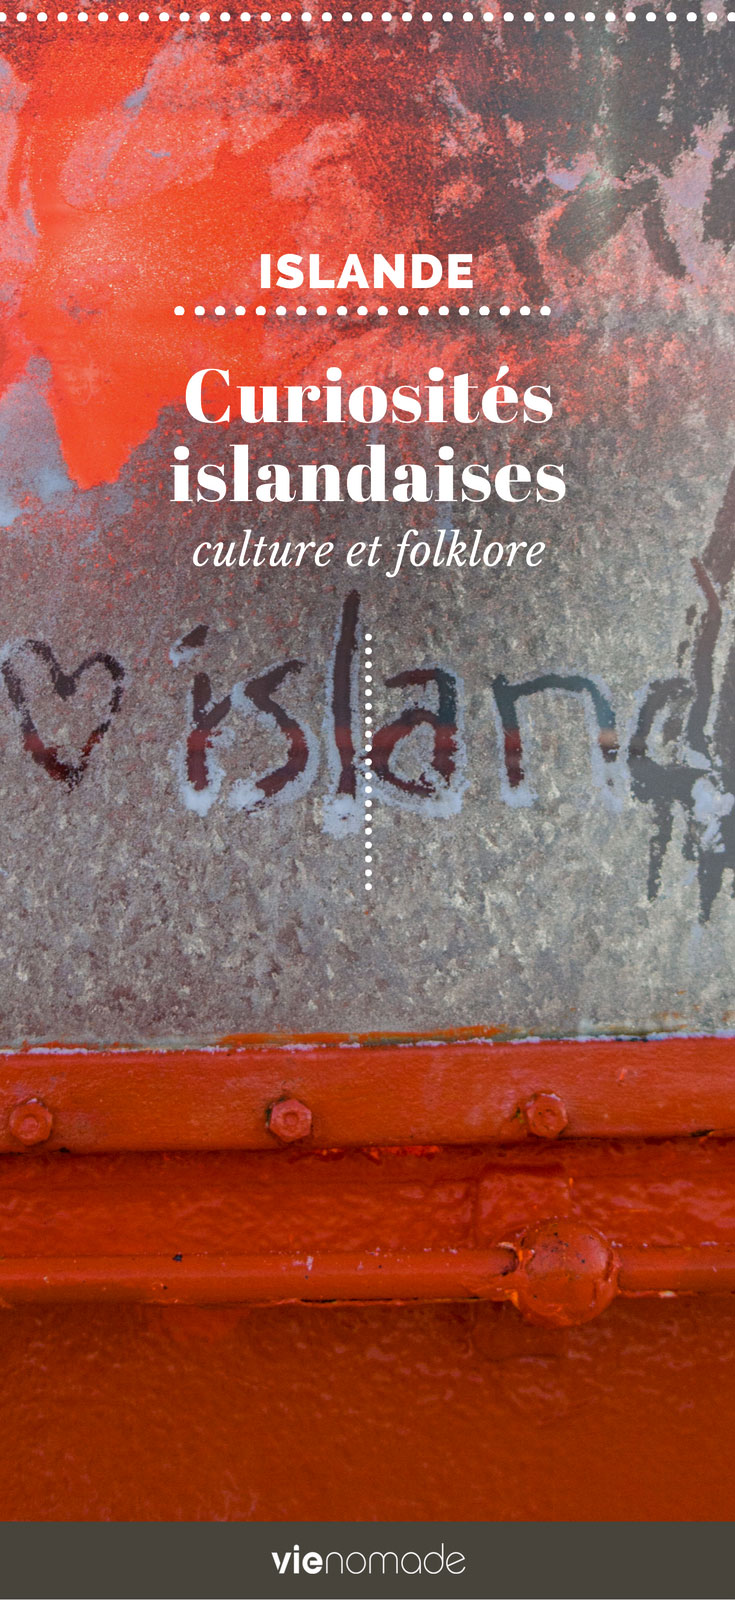 La culture et les traditions d'Islande